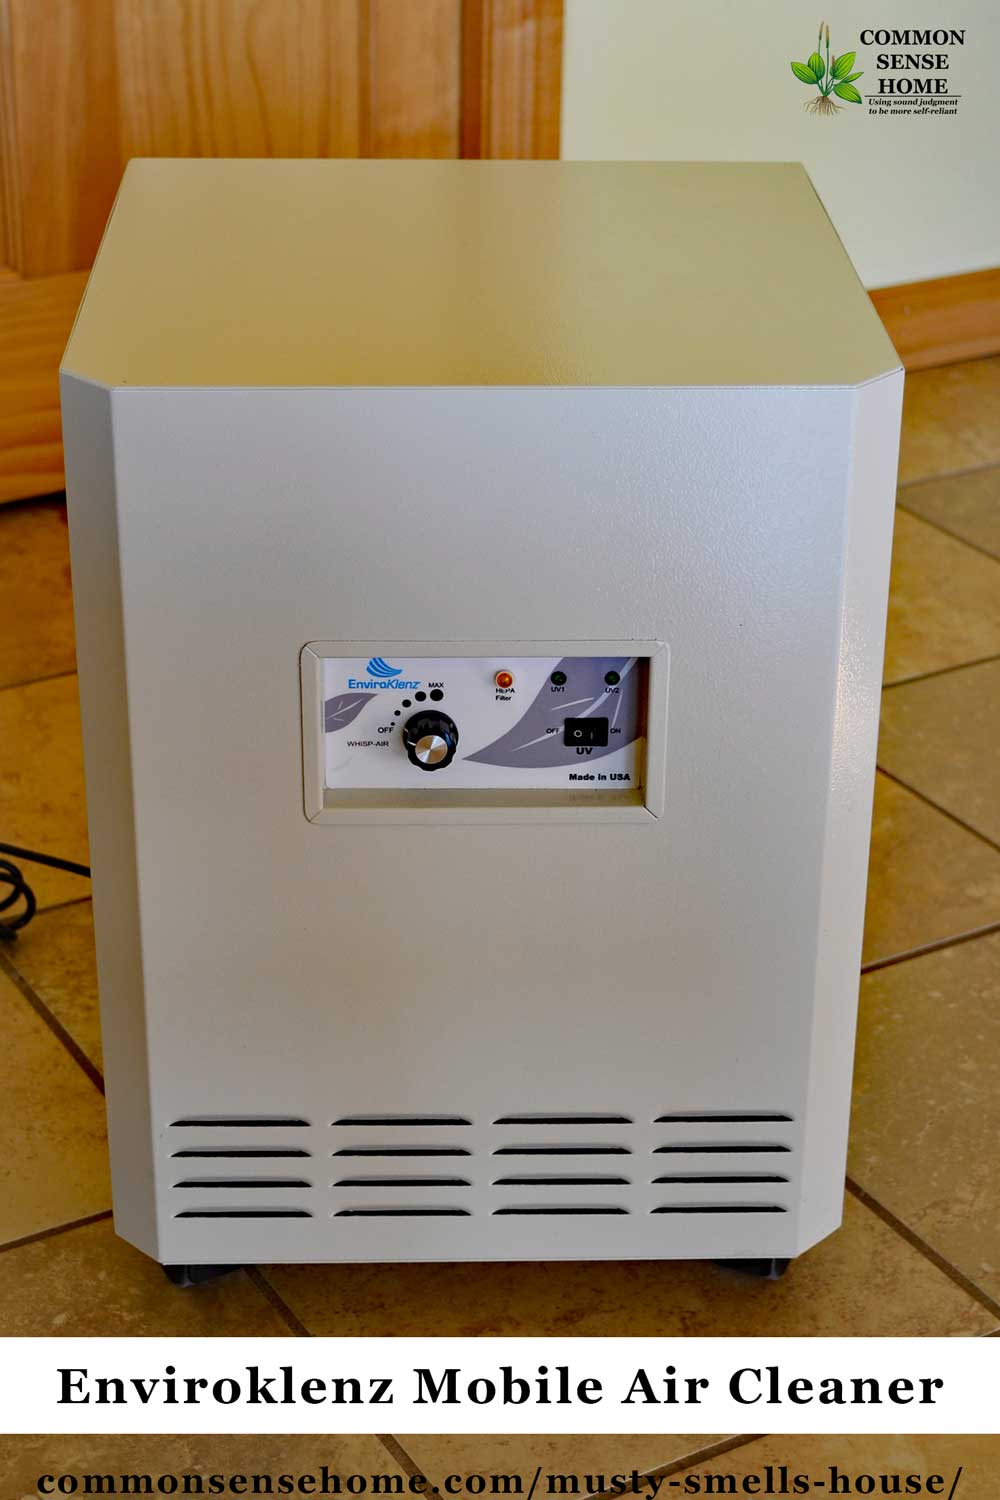 Enviroklenz Mobile Air Cleaner For Musty Smells